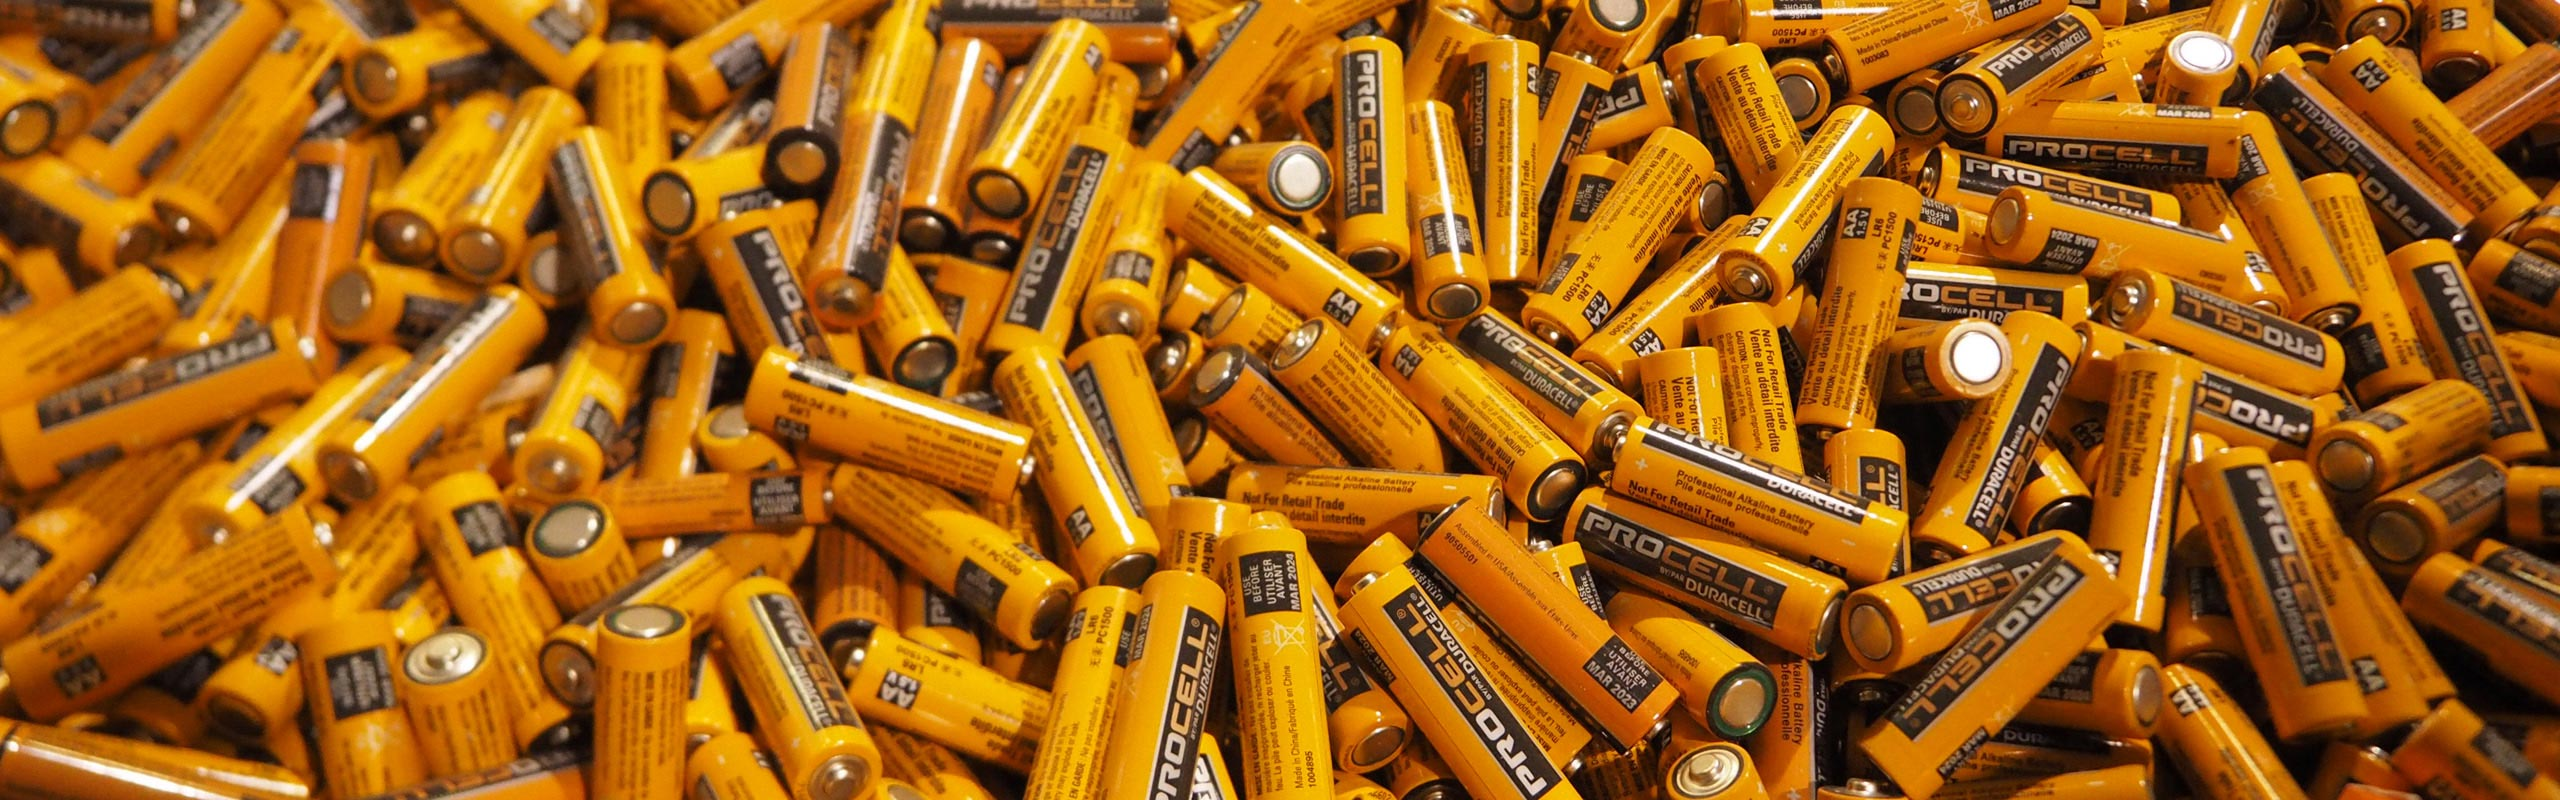 A picture of a large bin of all AA alkaline batteries. NLR recycles alkaline batteries and all other battery types.